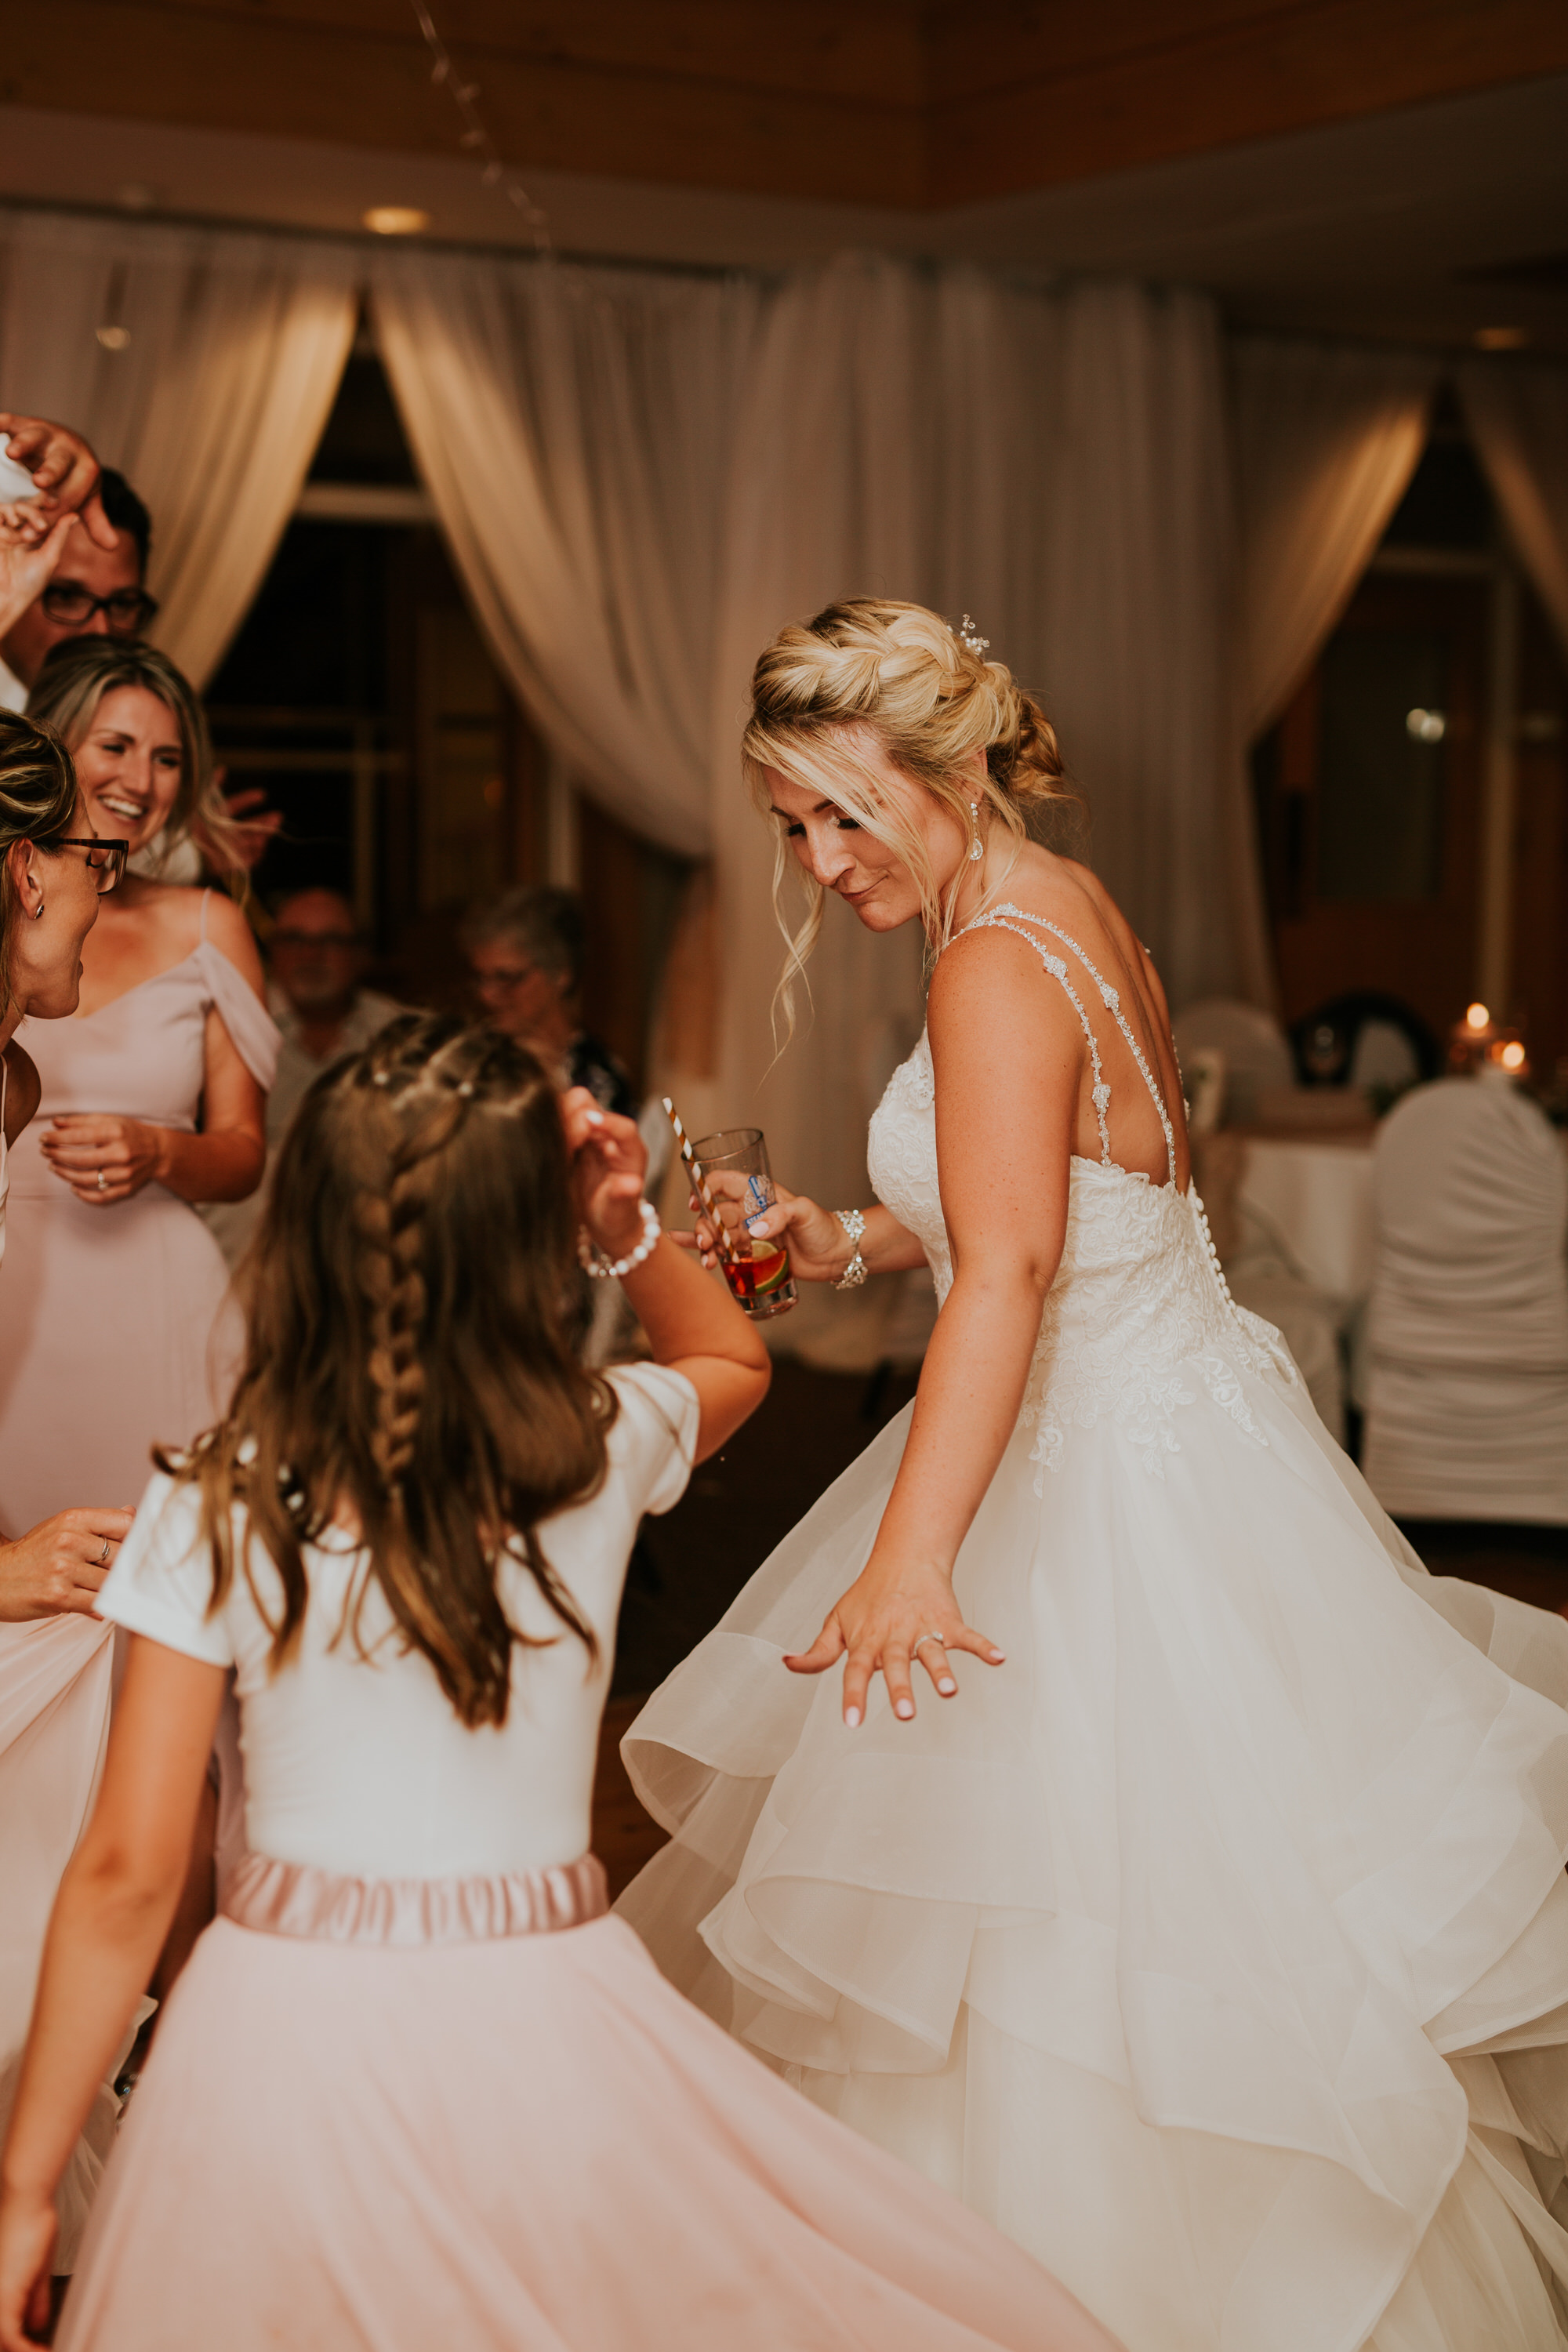 Elmhirst Resort Wedding - bride dancing